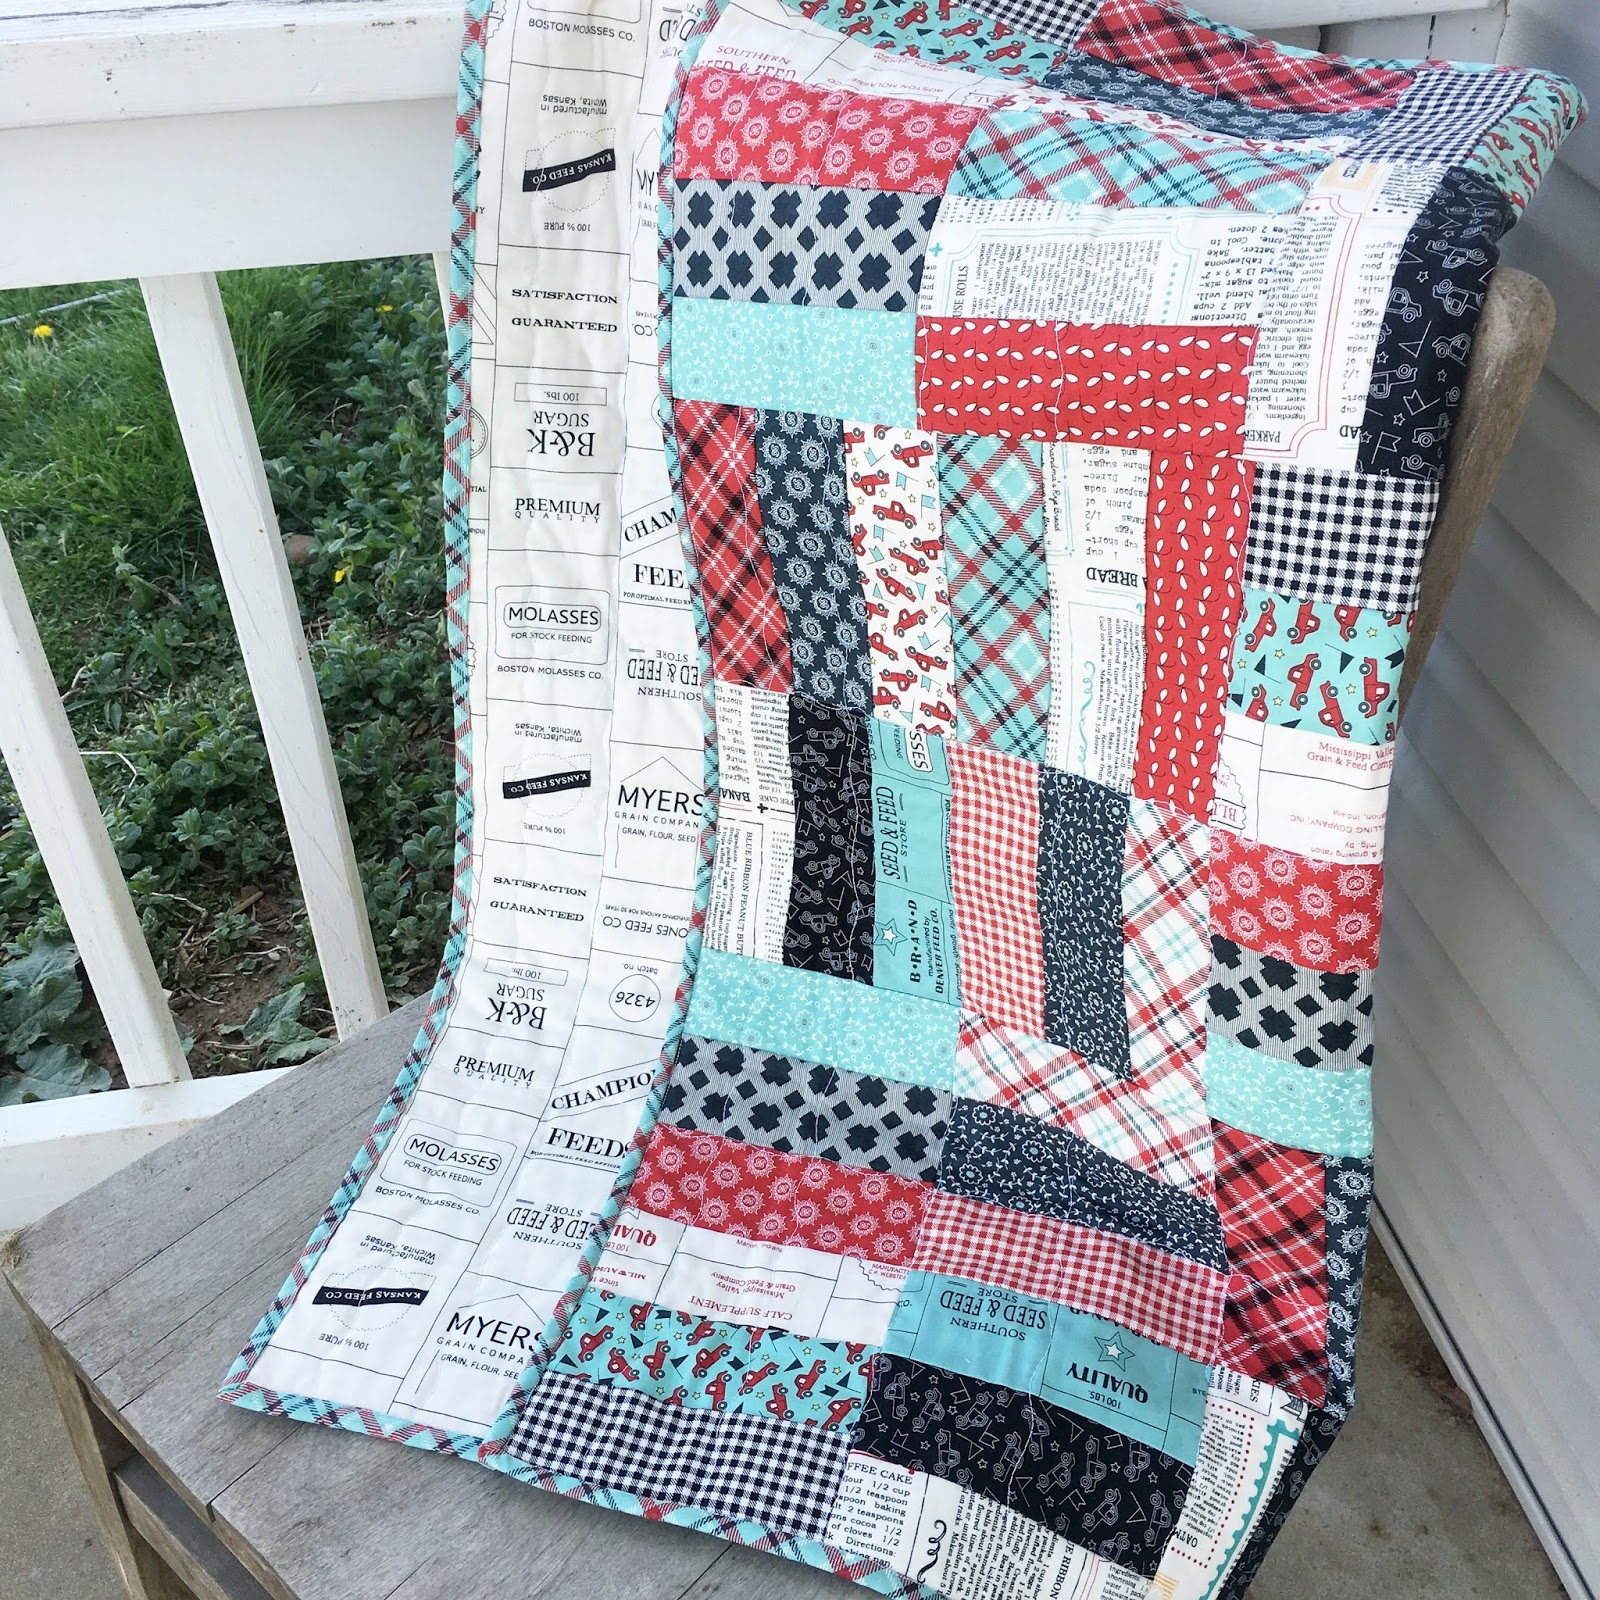 Jelly Roll Jam Quilt Hilltop Custom Designs